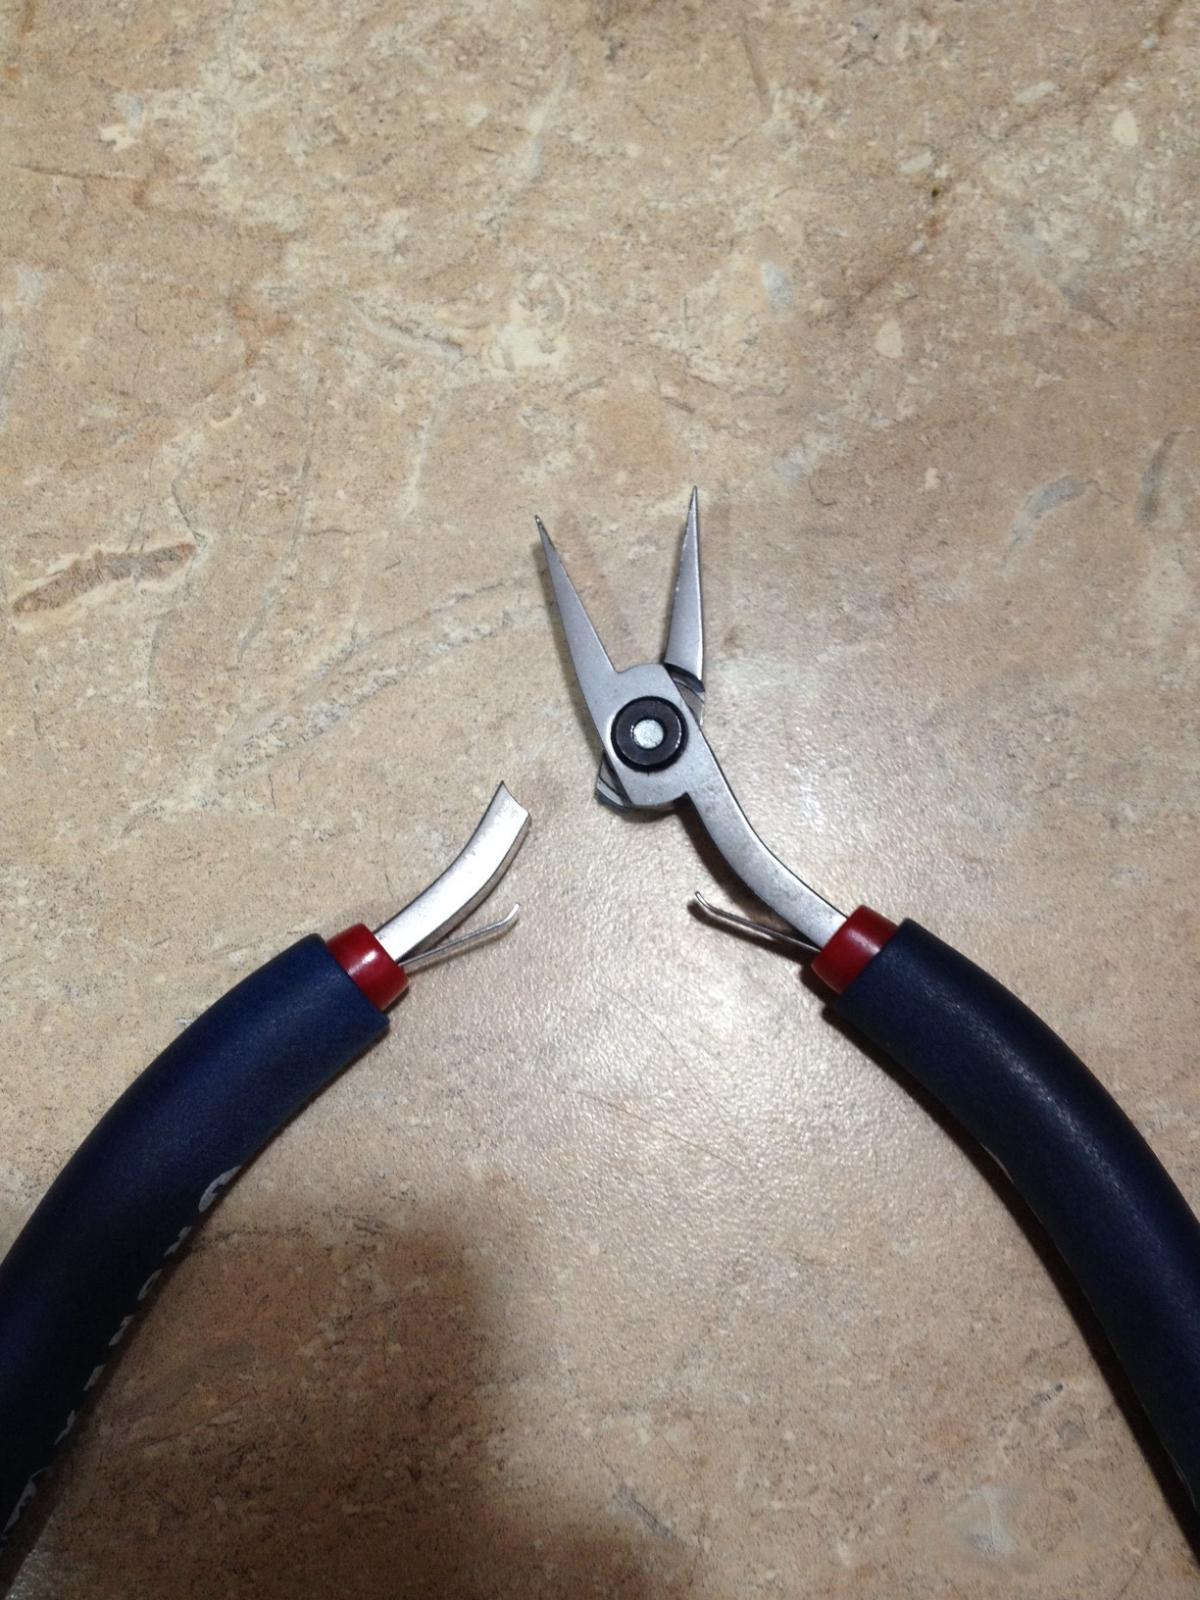 Tronex pliers feedback a bit disappointed in quality